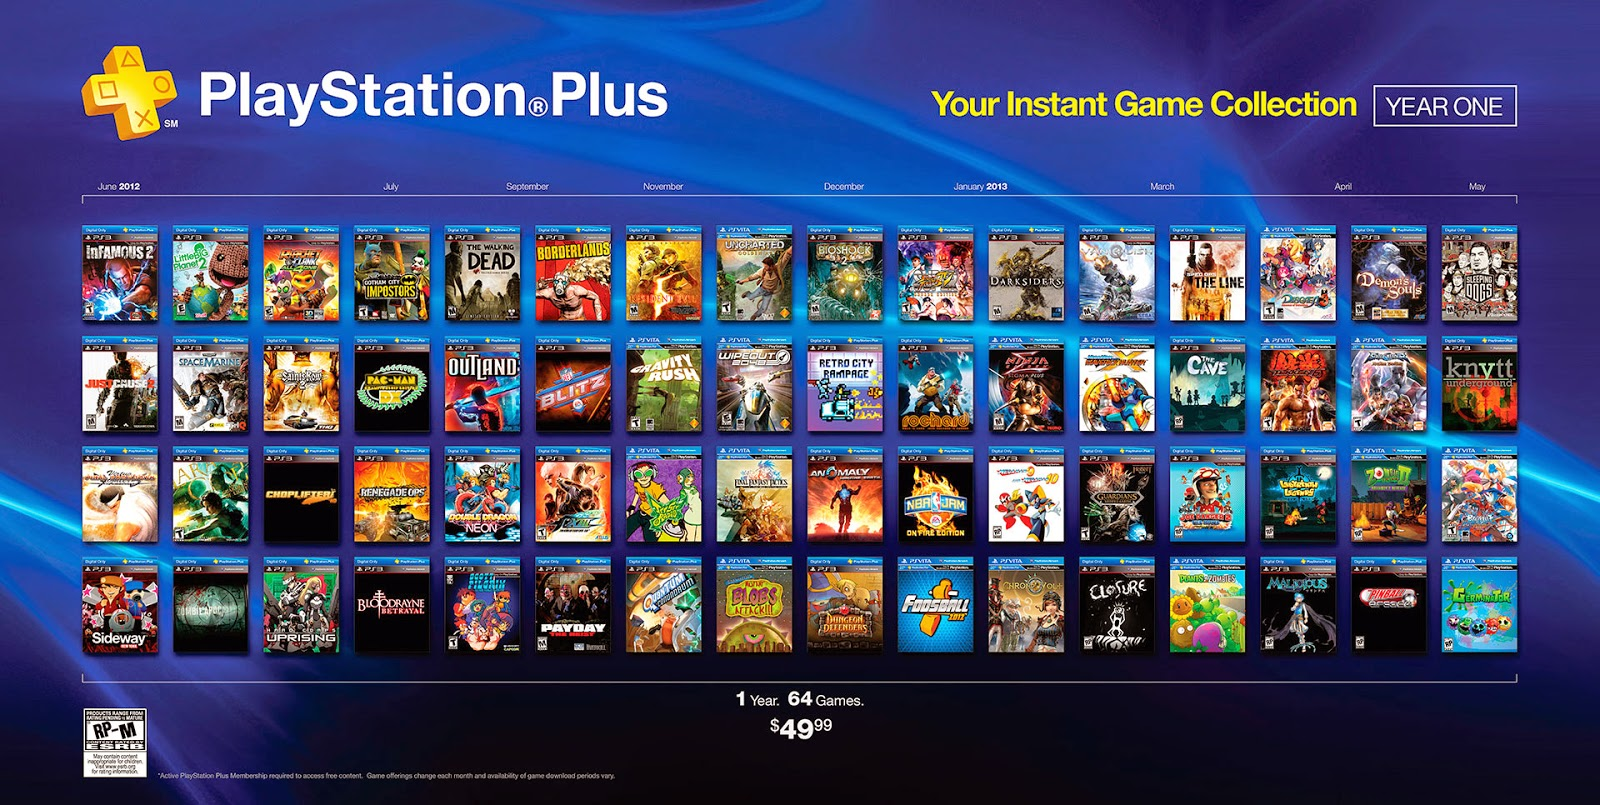 ps4-games---ps4-game---games-ps4---free-games-the-playstation-plus-enklwnlr.jpg